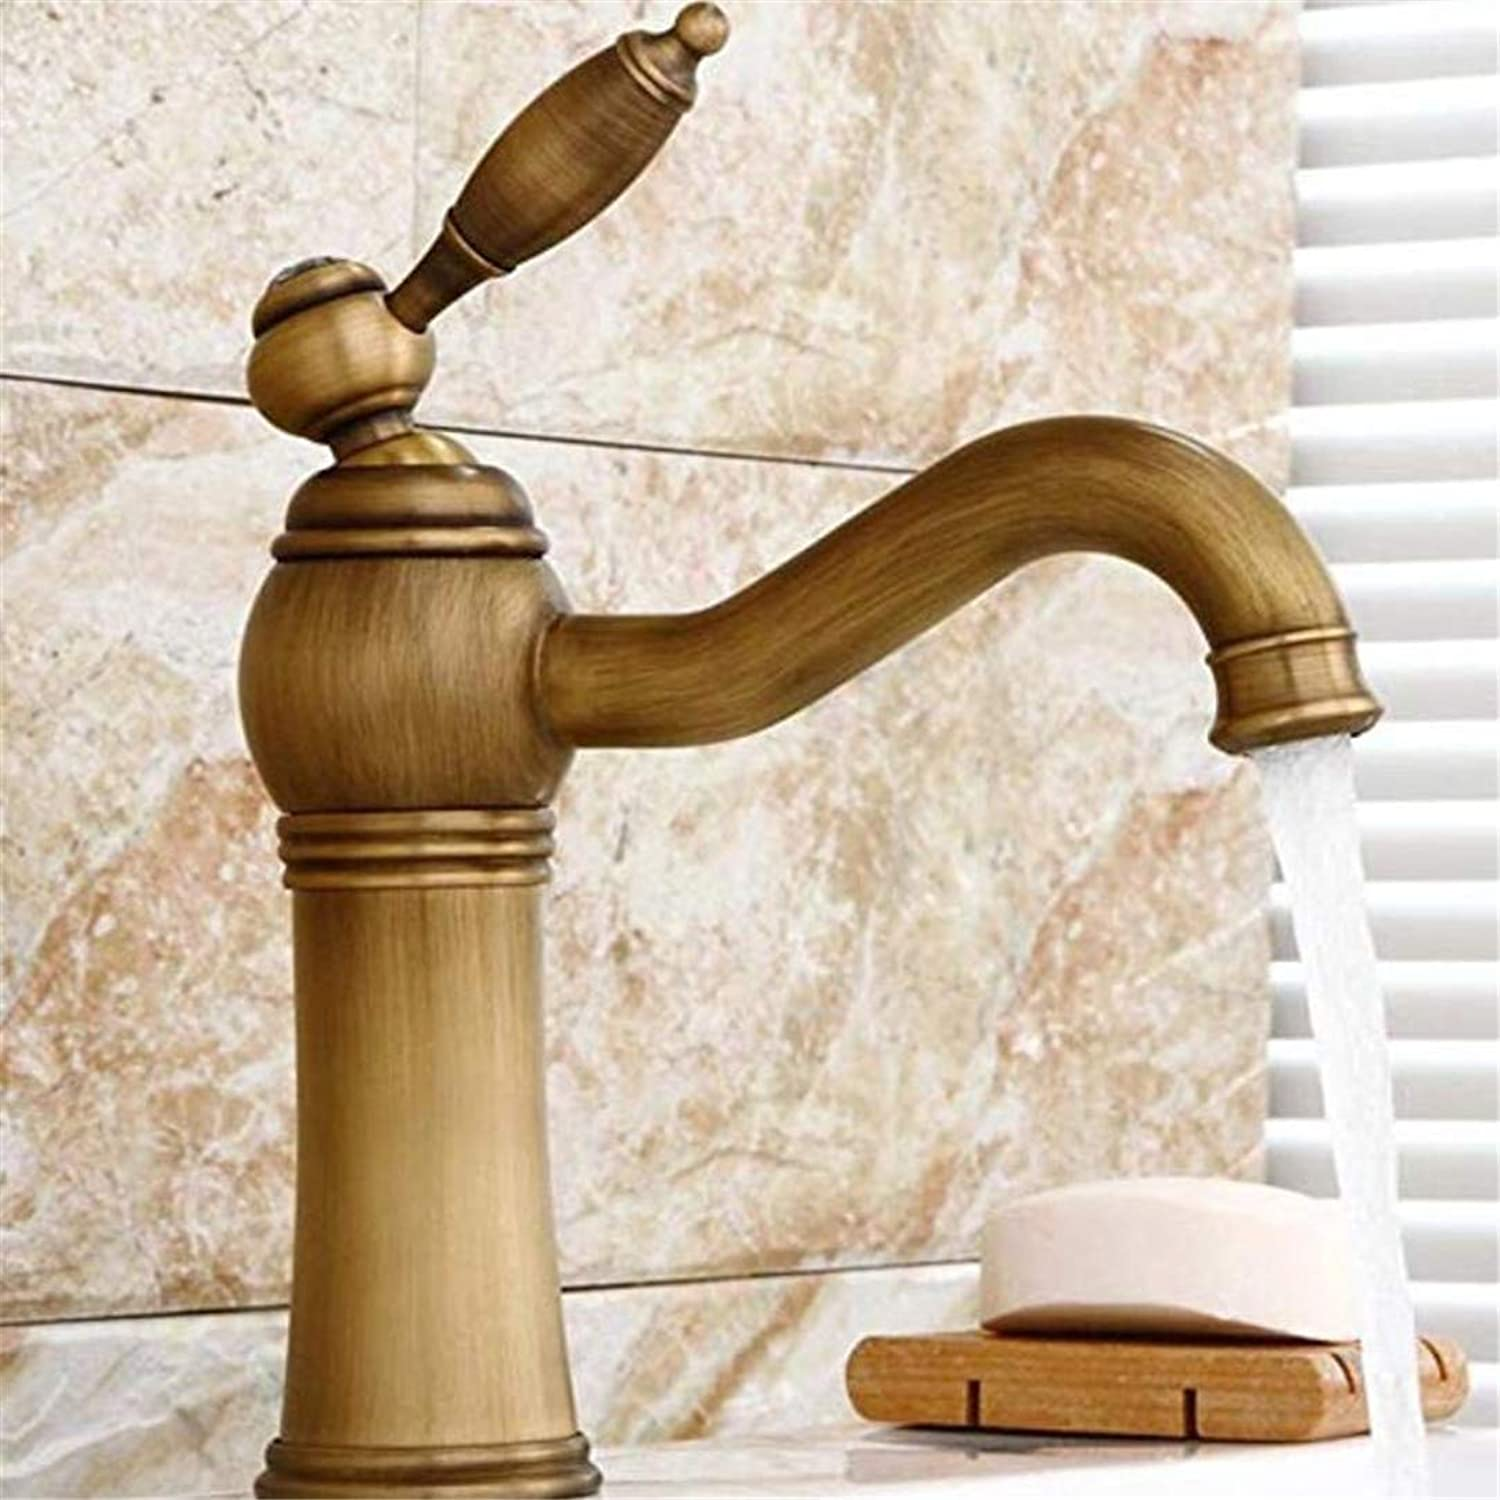 Basin Mixer Sink Taps Basin Mixer Sink Taps Bathroom Kitchen Sink Taps Brass Retro Hot and Cold Water Single Lever Sink Faucet